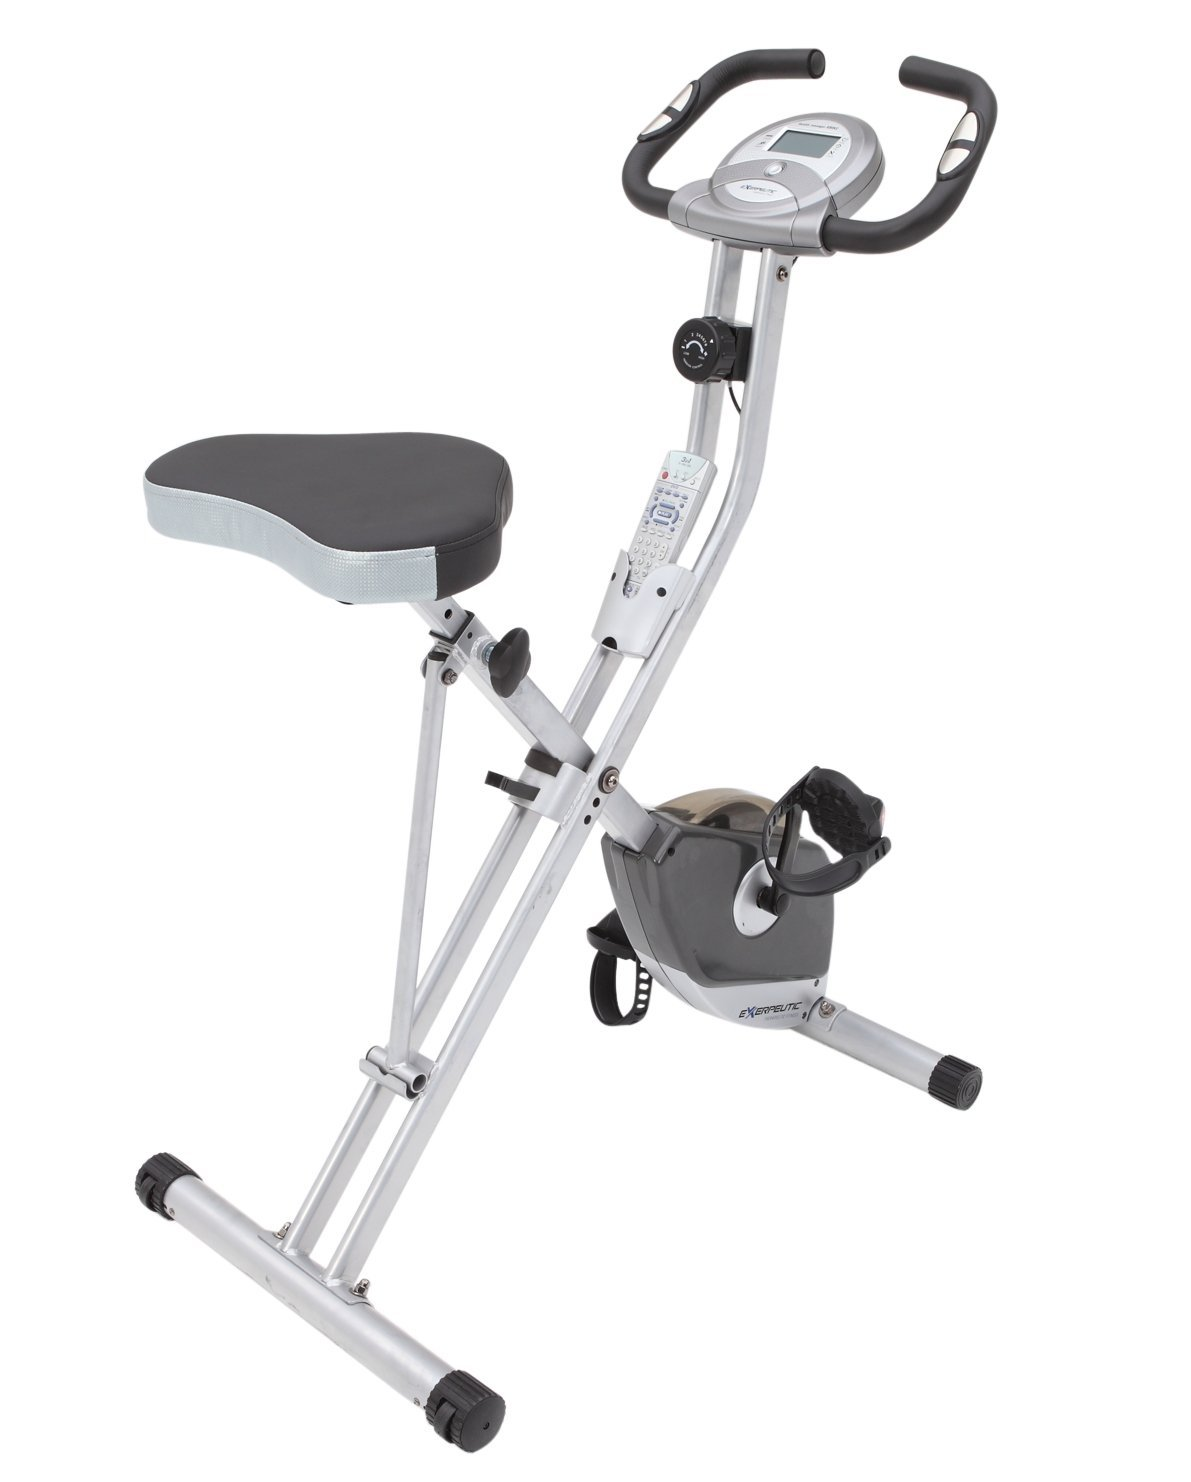 Exerpeutic 250XL Upright Bike with Pulse Grips - Exerpeutic 1200